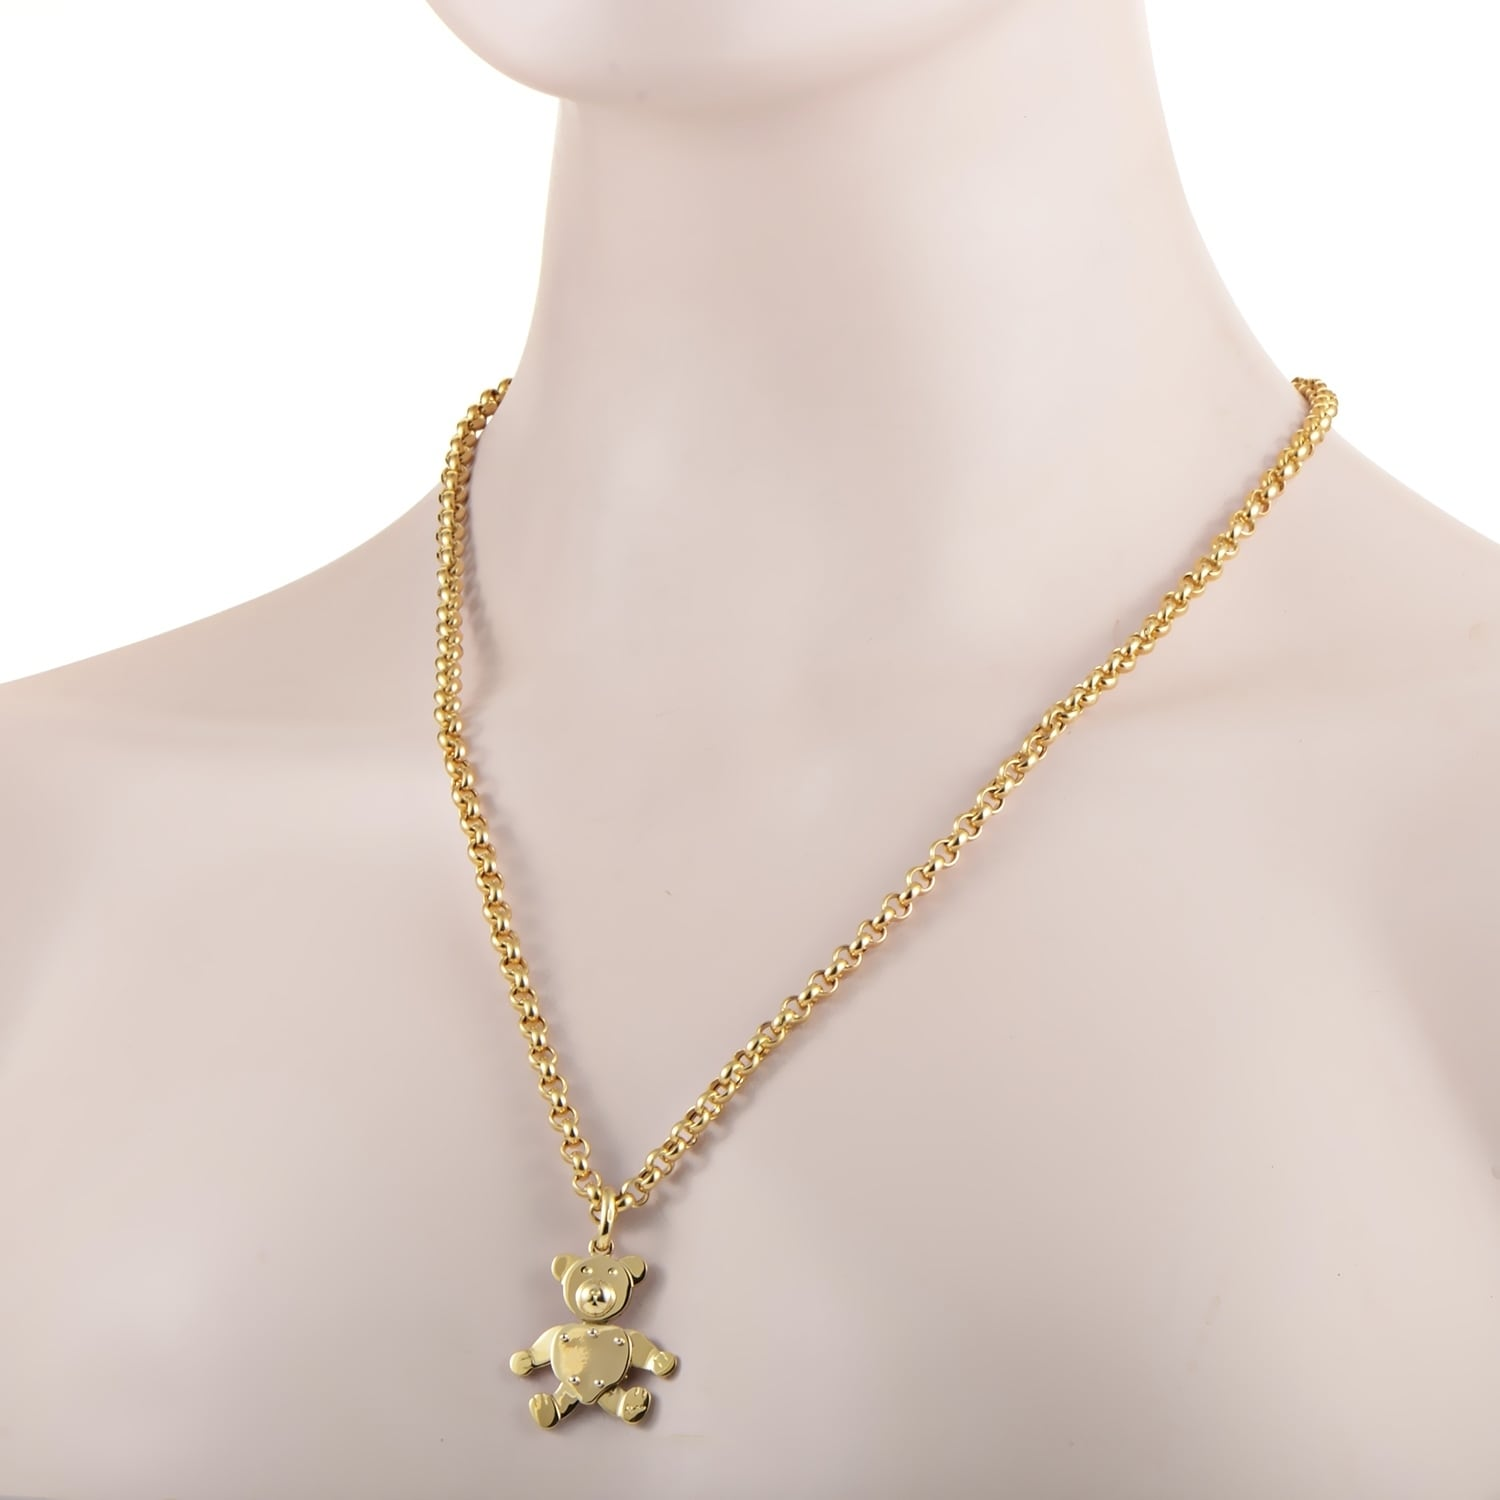 dfb1ccc9bc1999 Shop Pomellato Yellow Gold Teddy Bear Pendant Necklace - Free Shipping  Today - Overstock - 21705792